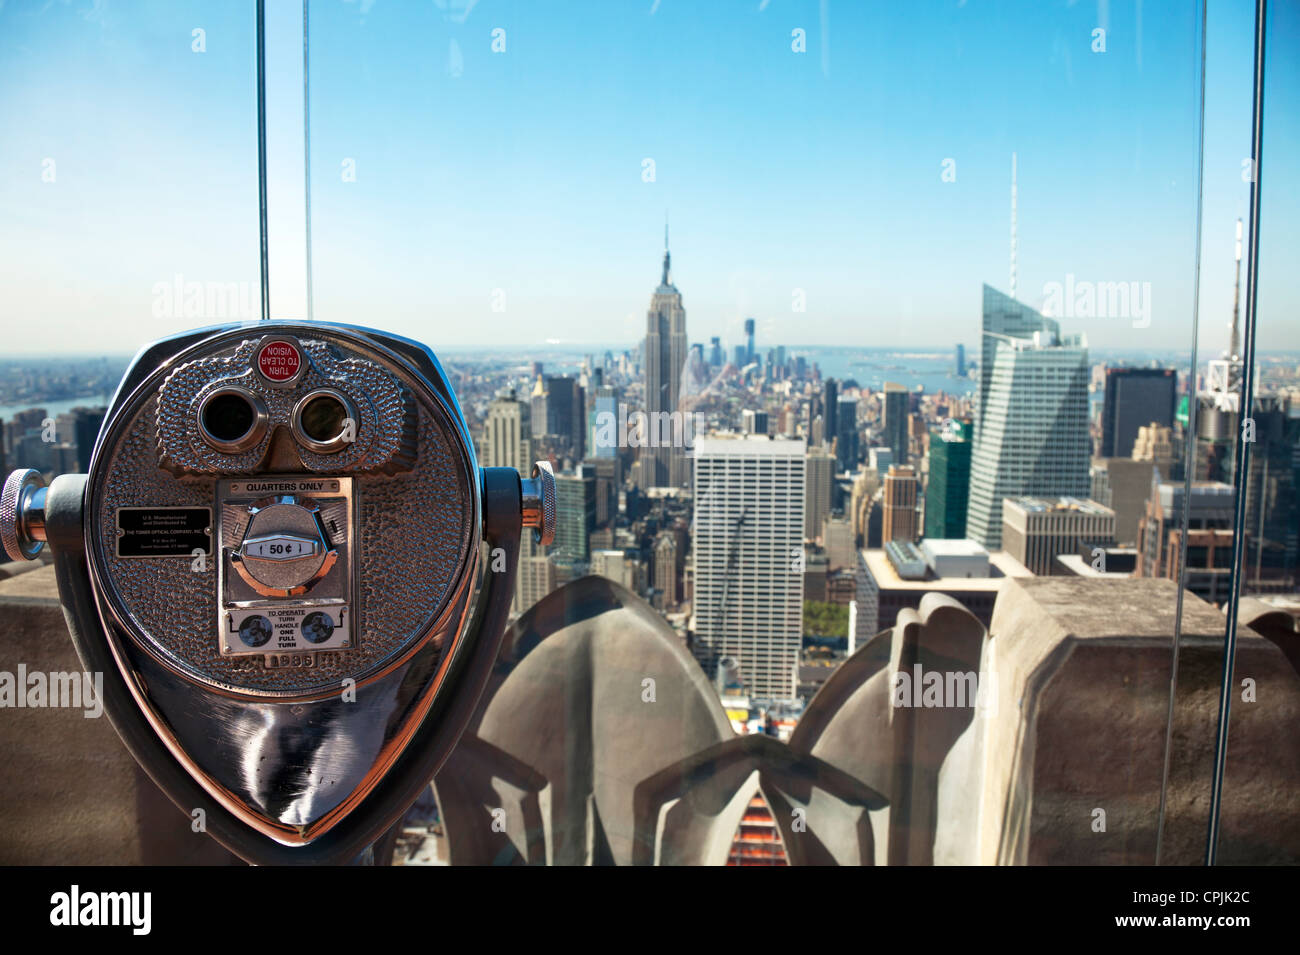 New York City midtown and lower Manhattan viewing point from the Rockefeller centre center Empire State building - Stock Image